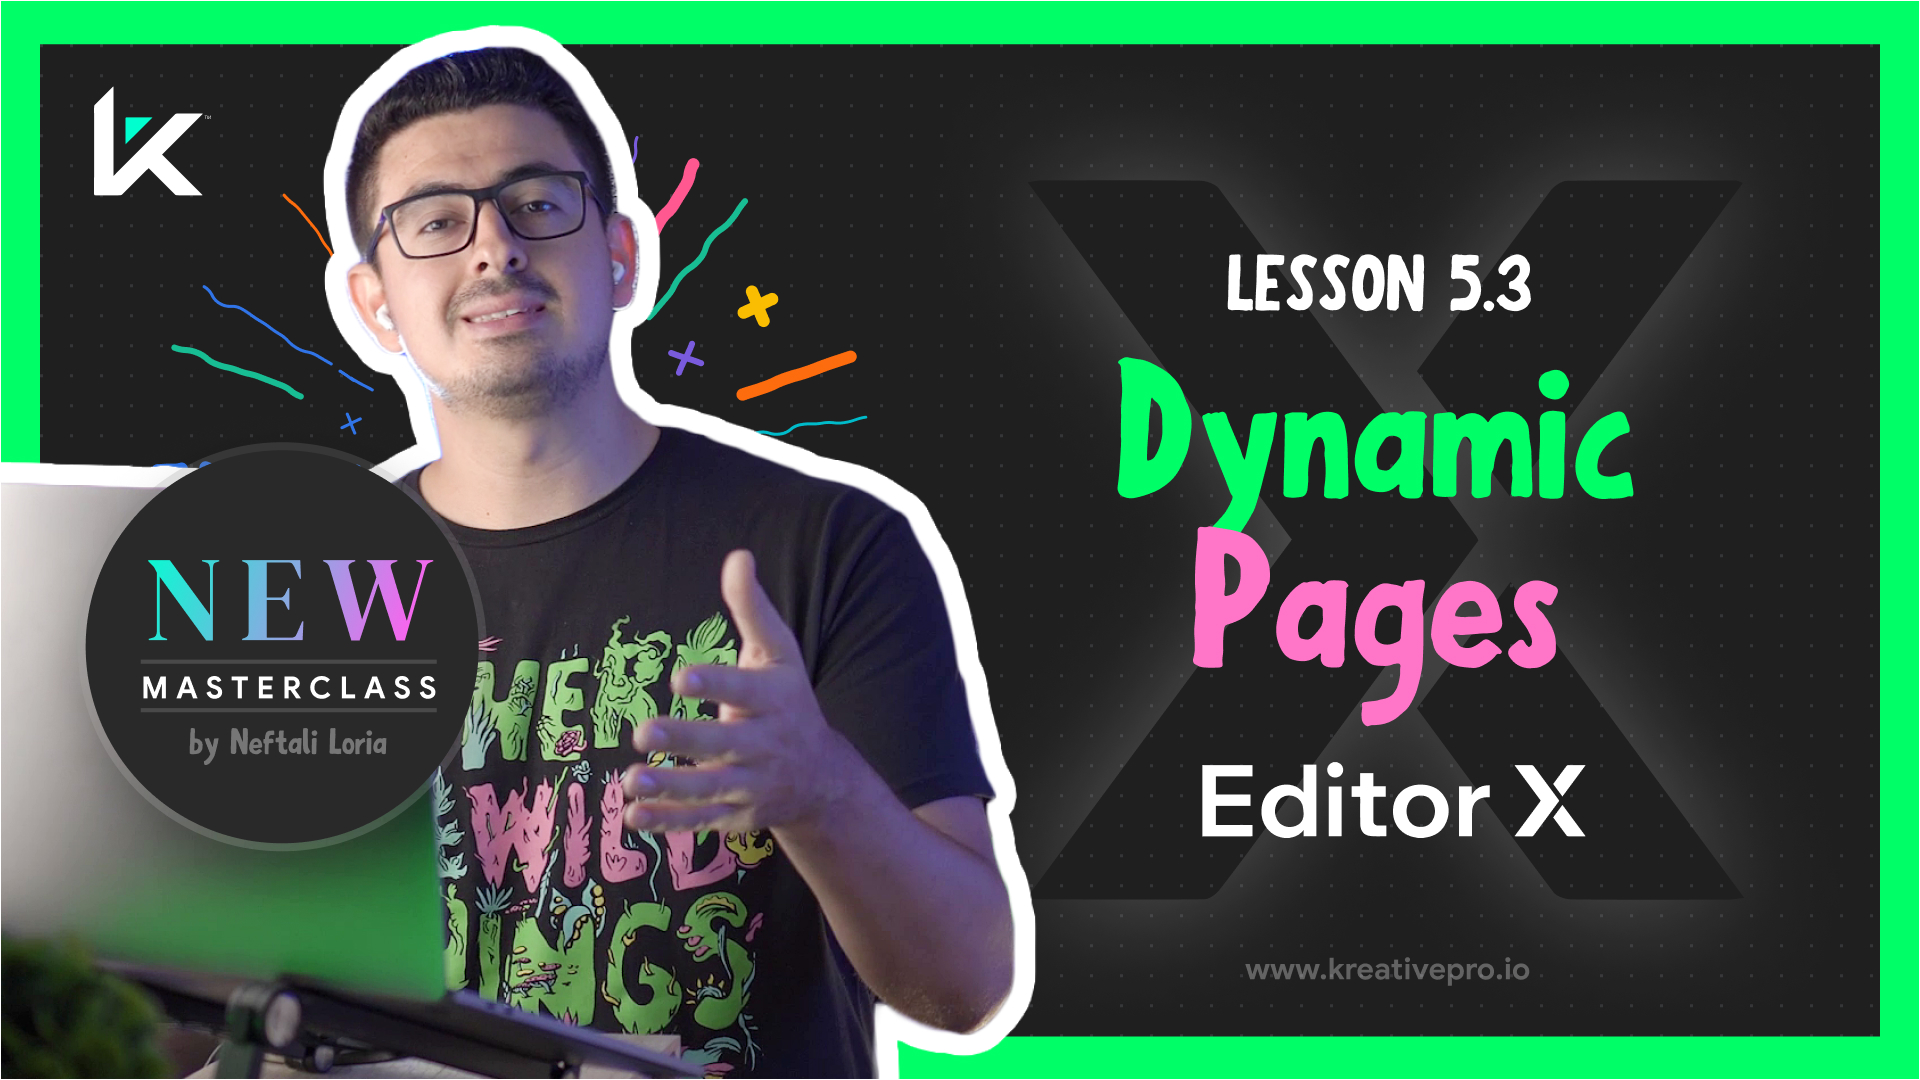 Editor X 5.3 - Dynamic Pages